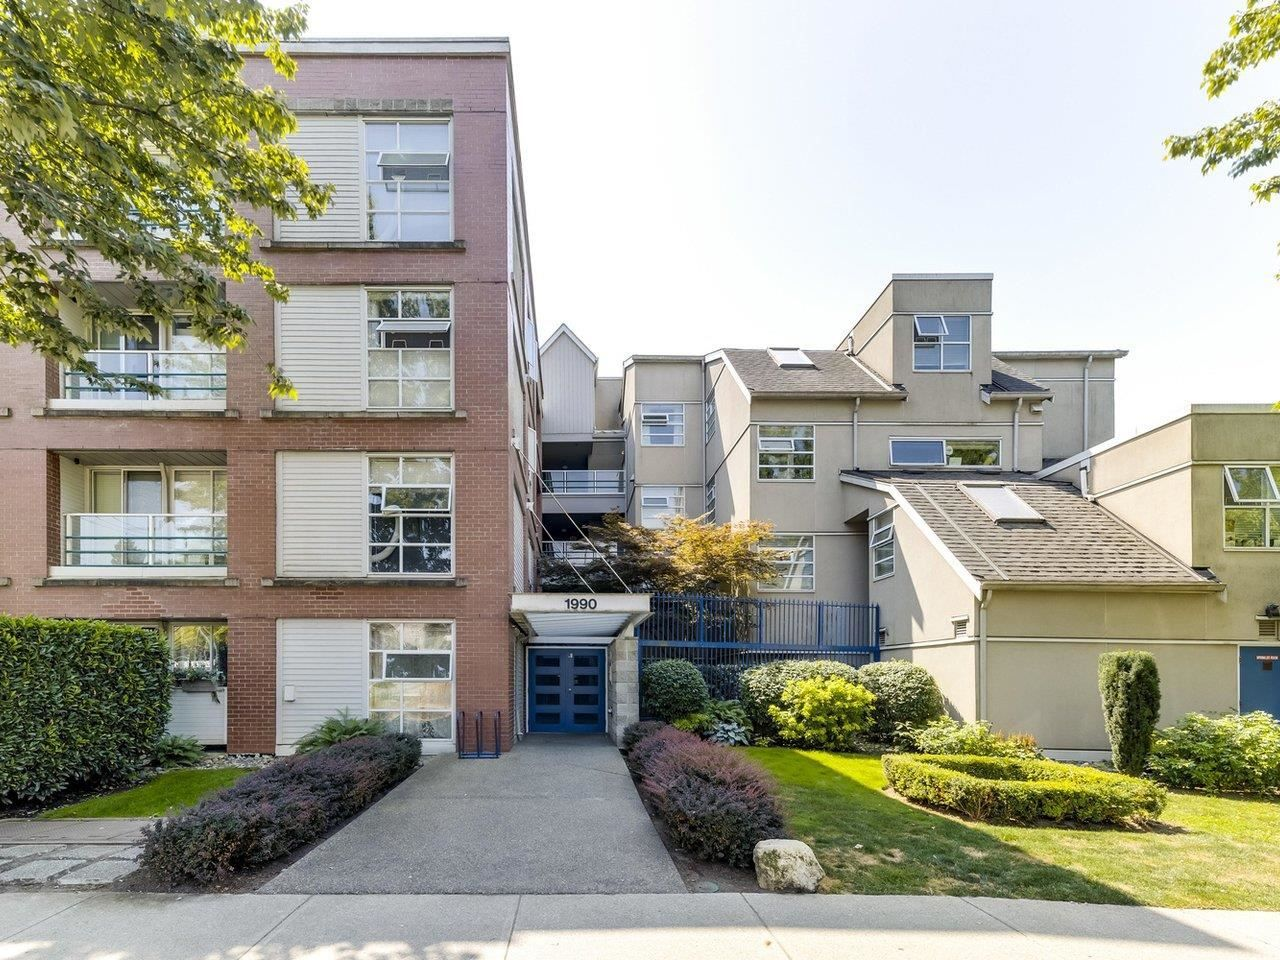 """Main Photo: 104 1990 E KENT AVENUE SOUTH in Vancouver: South Marine Condo for sale in """"Harbour House at Tugboat Landing"""" (Vancouver East)  : MLS®# R2607315"""